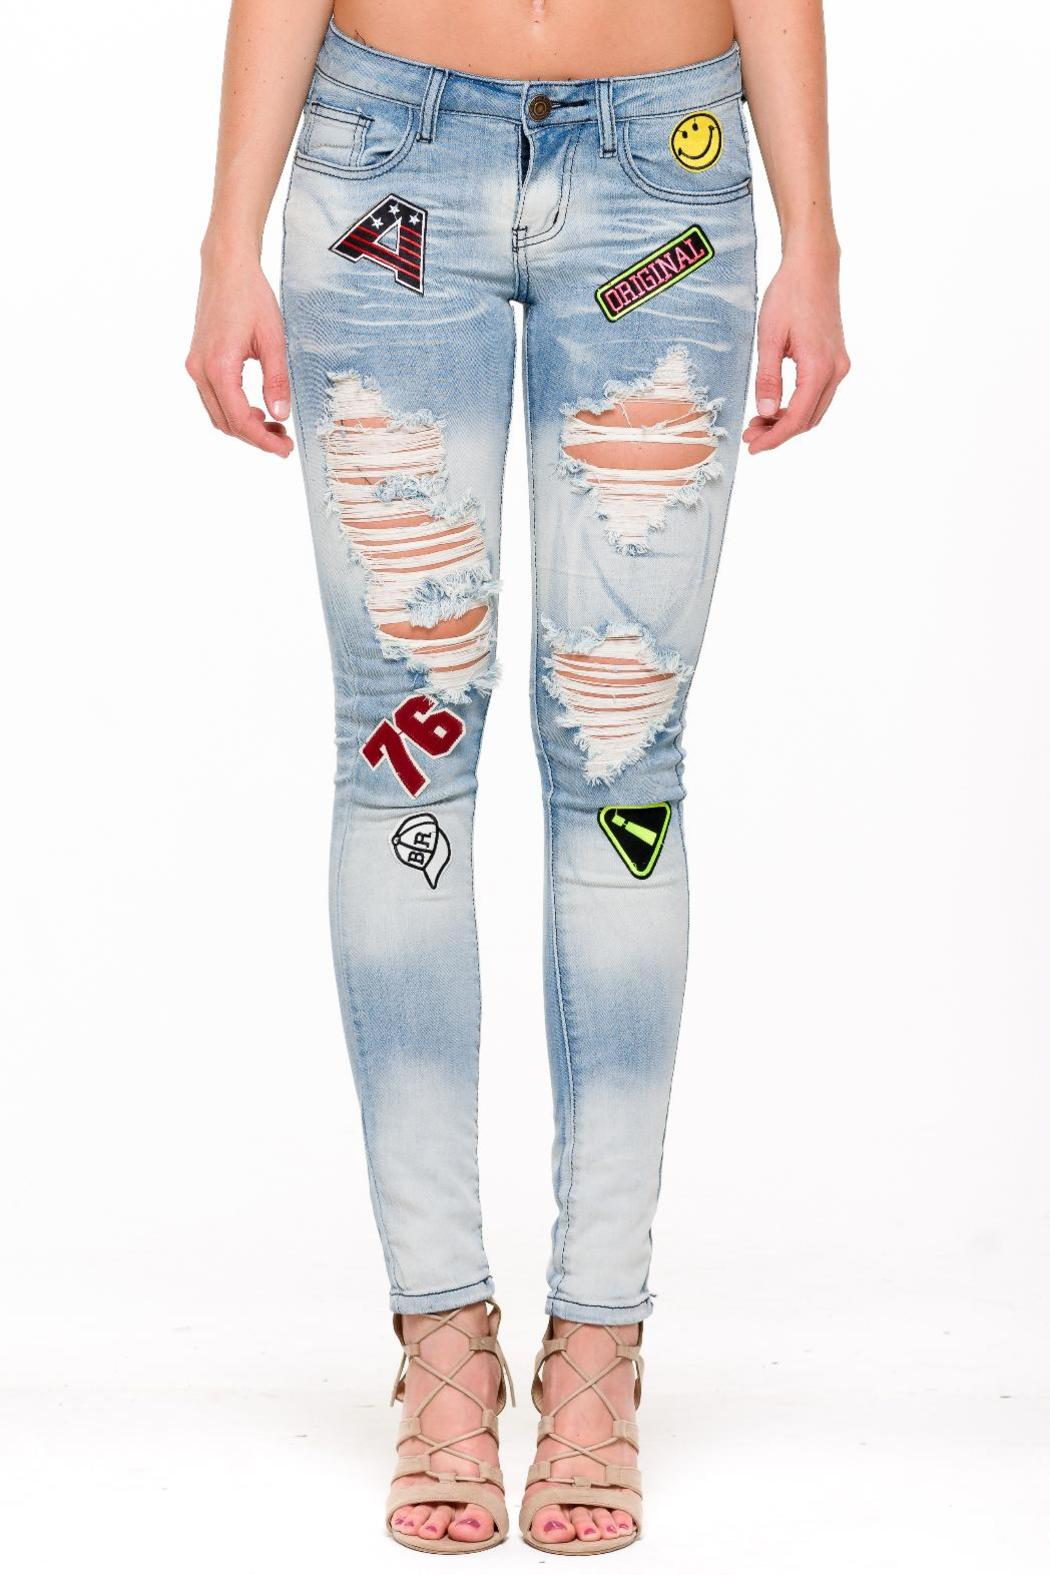 Machine Jeans Distressed Patched Jeans - Main Image